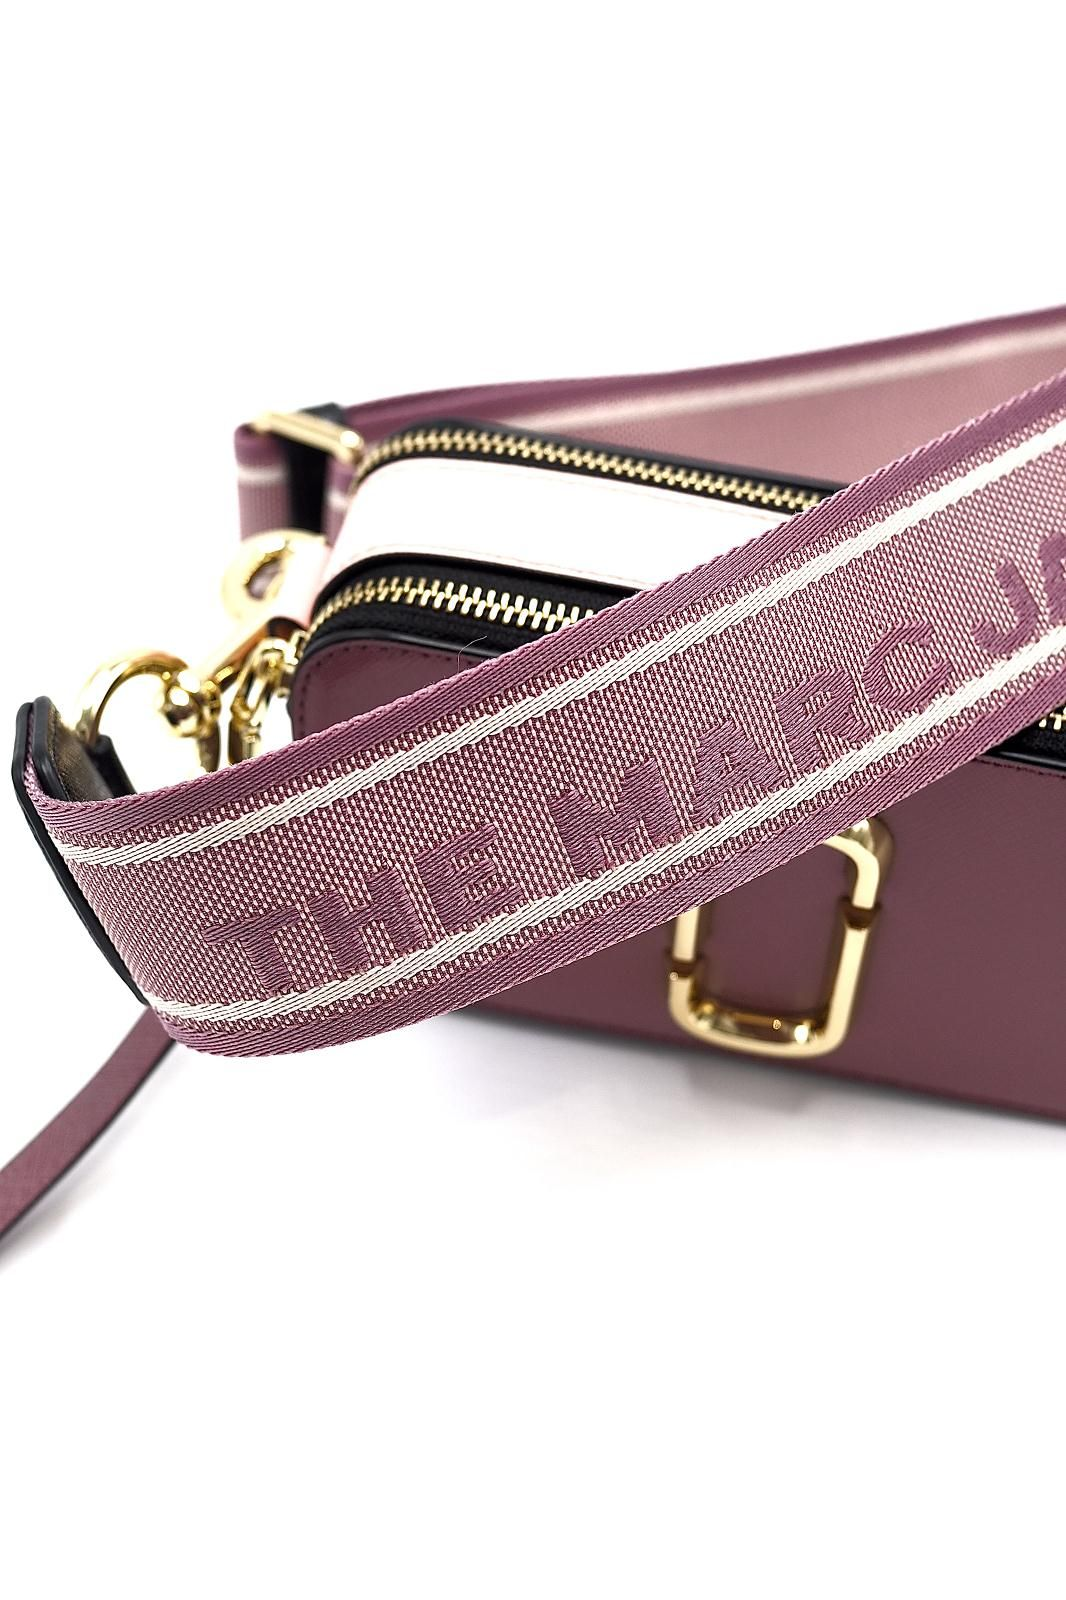 Marc Jacobs sac Rose femmes (MJACOBS-Snapshot Dusty Ruby - SNAPSHOT 21 12007-517 frambois) - Marine | Much more than shoes